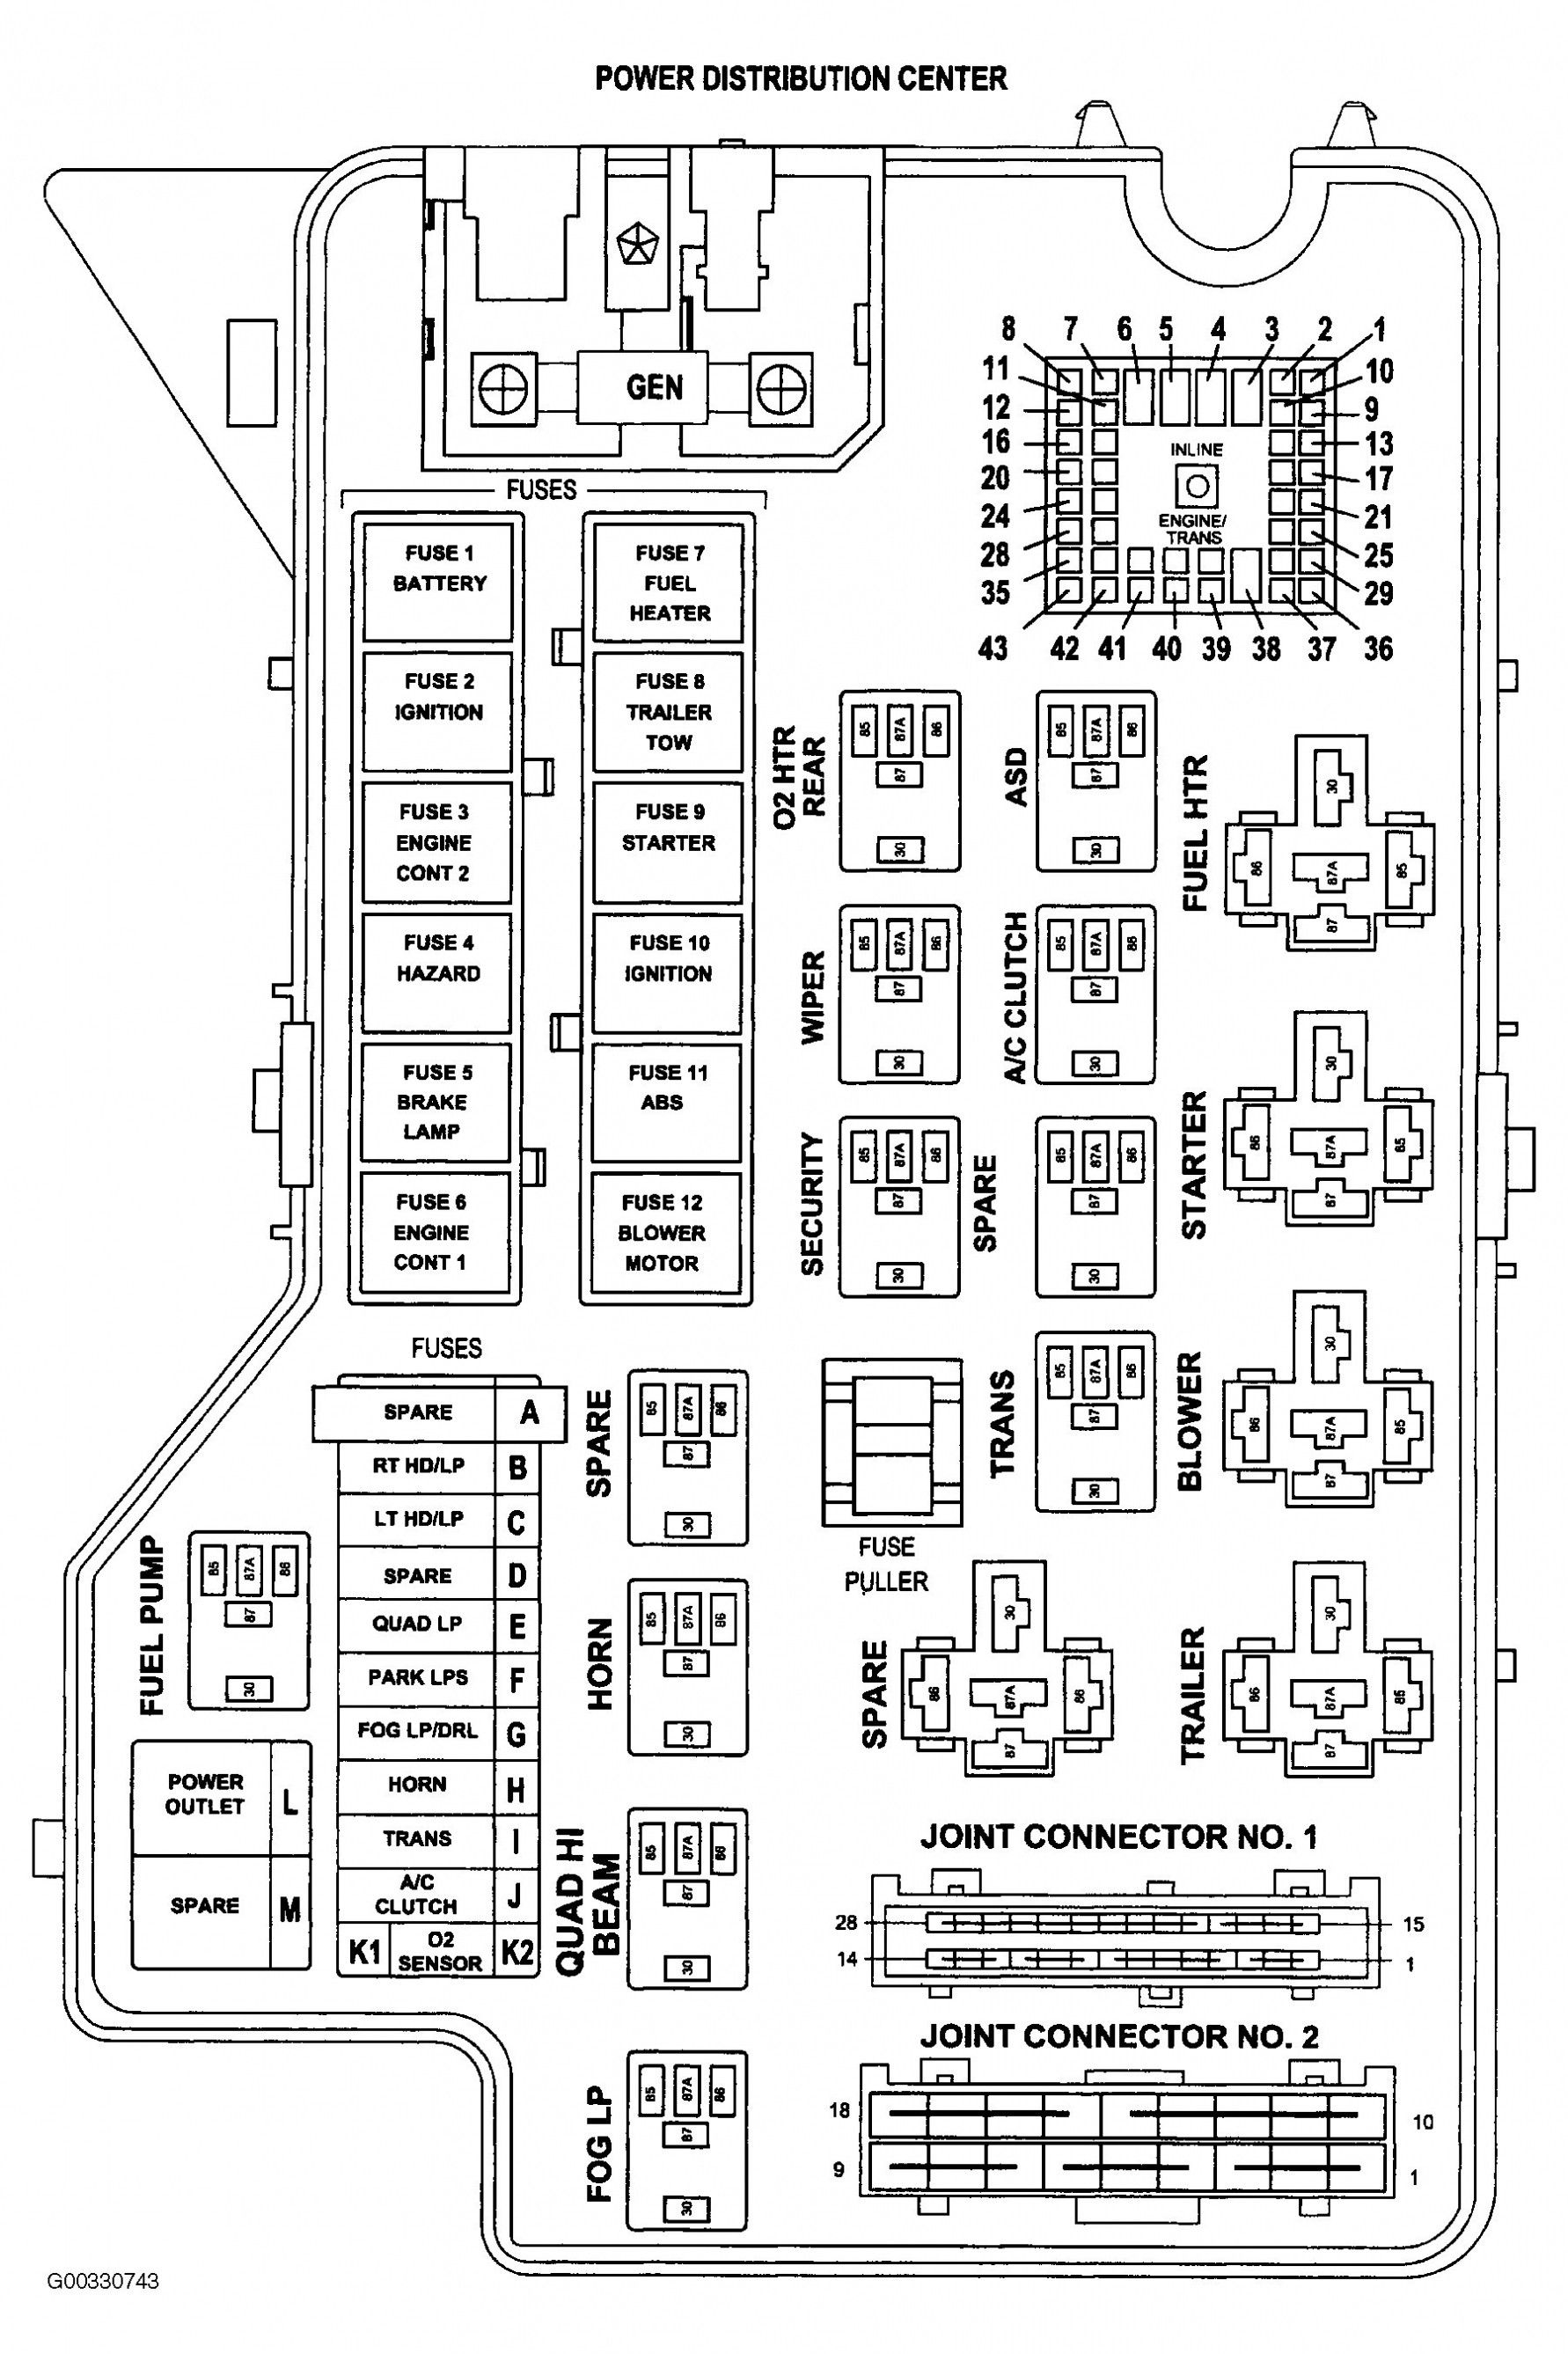 medium resolution of new 2011 dodge ram 1500 radio wiring diagram diagram diagramsample diagramtemplate wiringdiagram